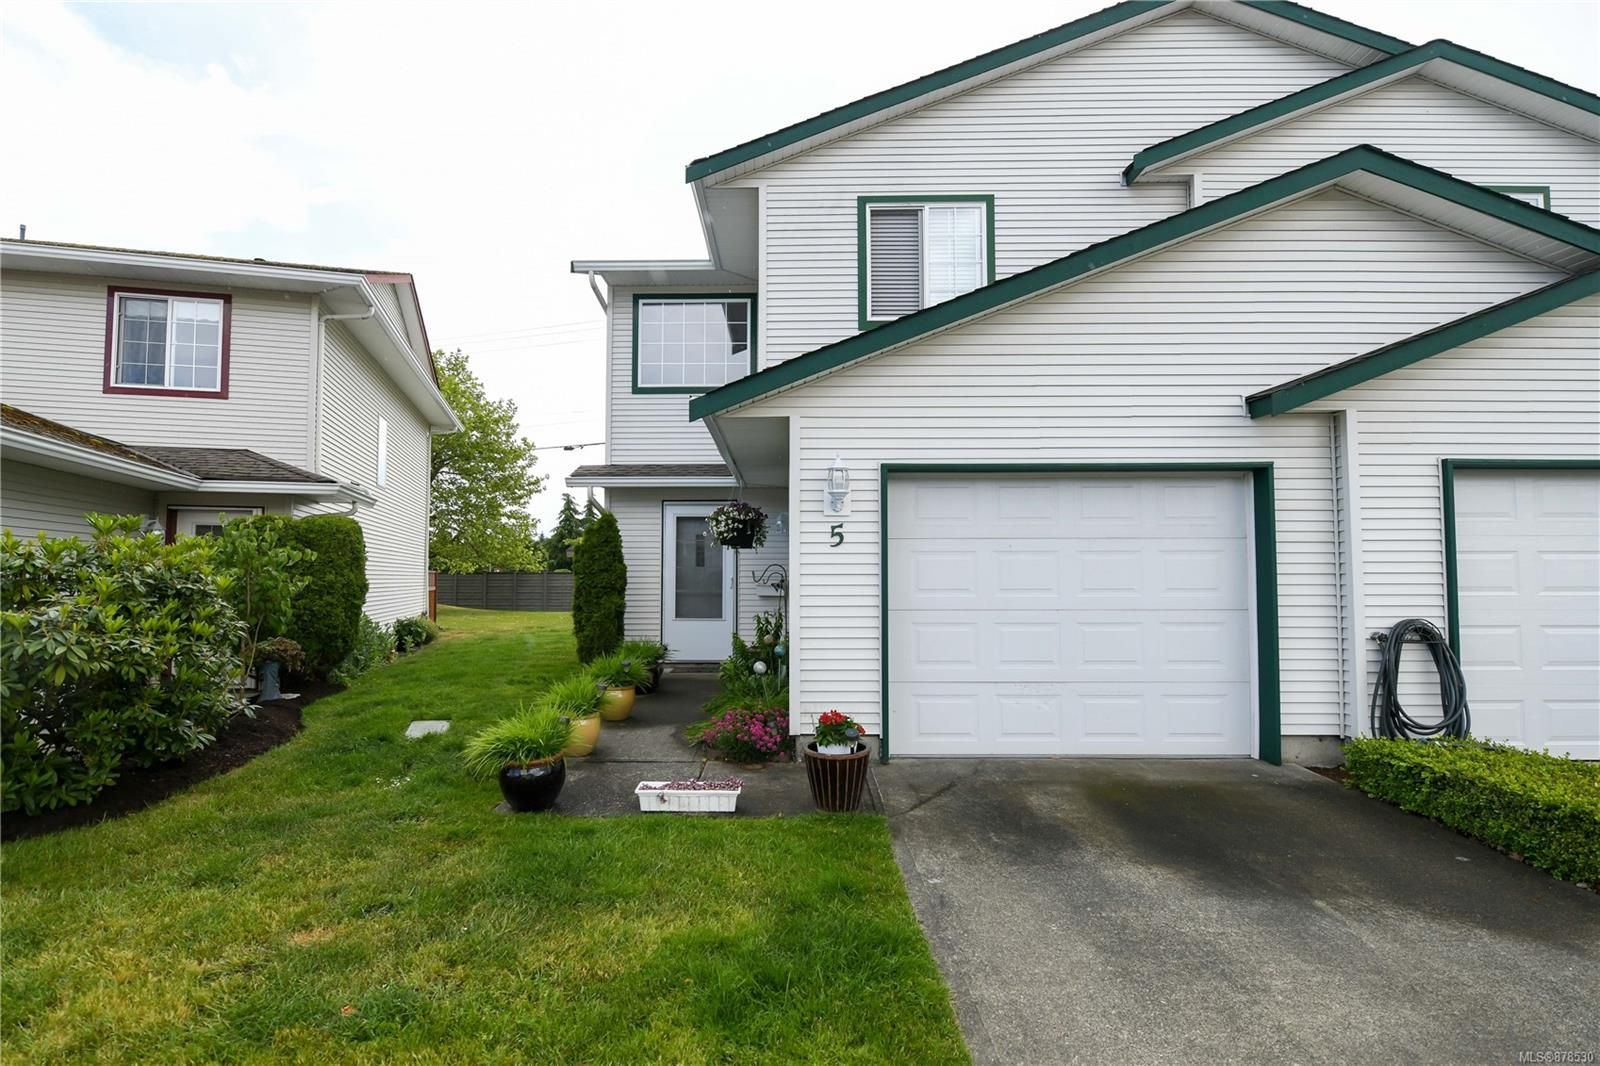 Main Photo: 5 717 Aspen Rd in : CV Comox (Town of) Row/Townhouse for sale (Comox Valley)  : MLS®# 878530